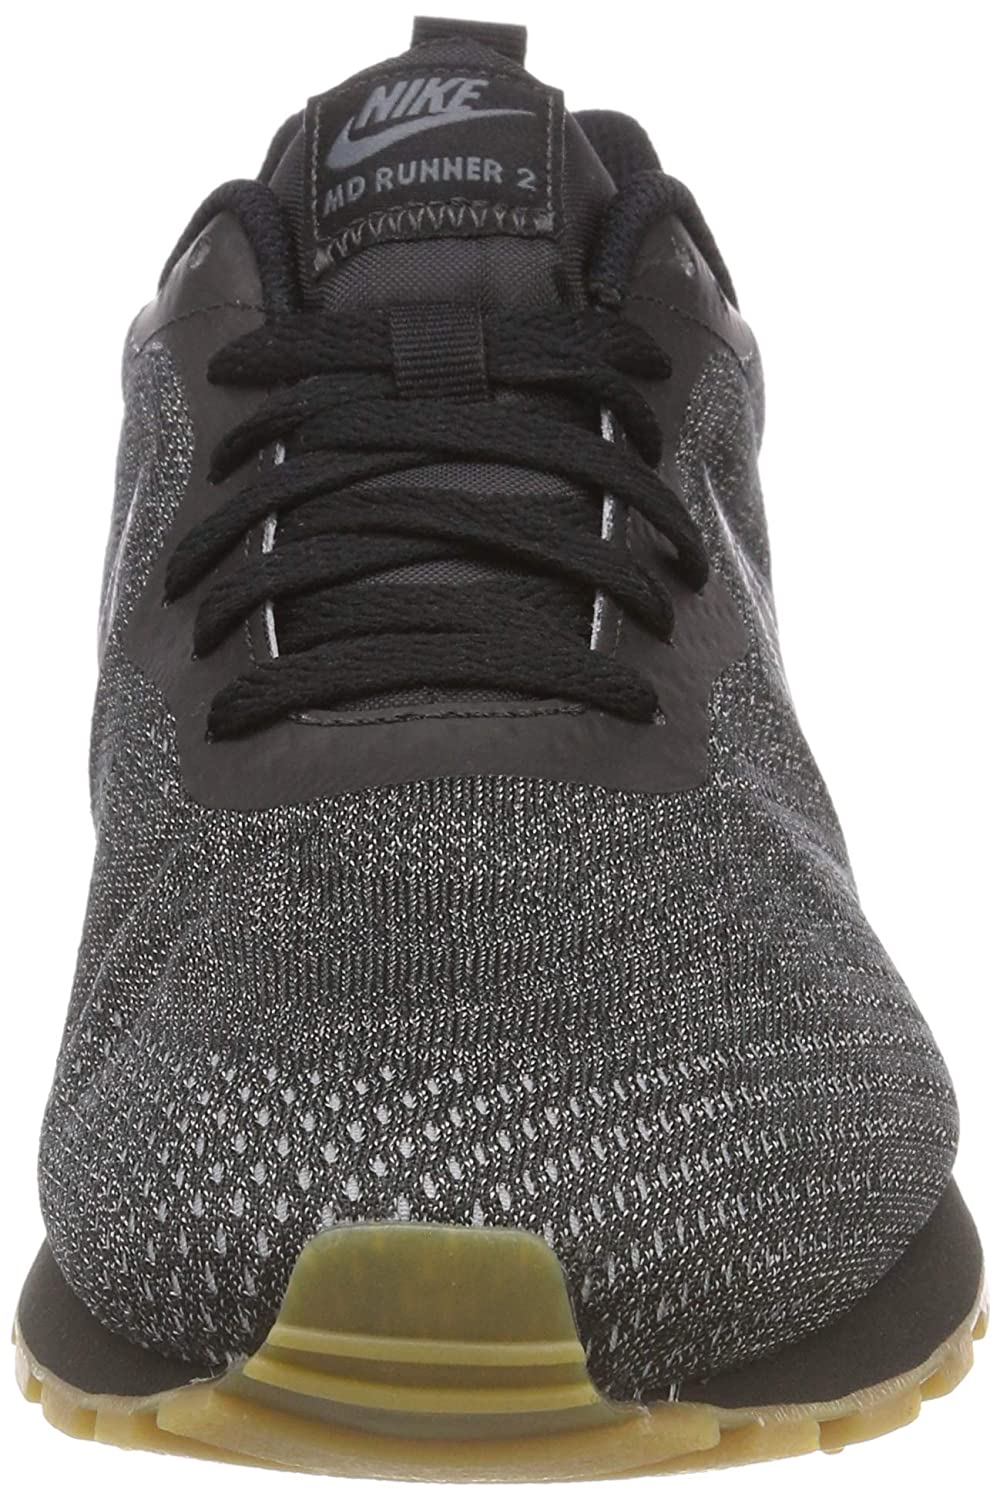 9ef8e16df0 Nike Men's Md Runner 2 Eng Mesh Fitness Shoes: Amazon.co.uk: Shoes & Bags